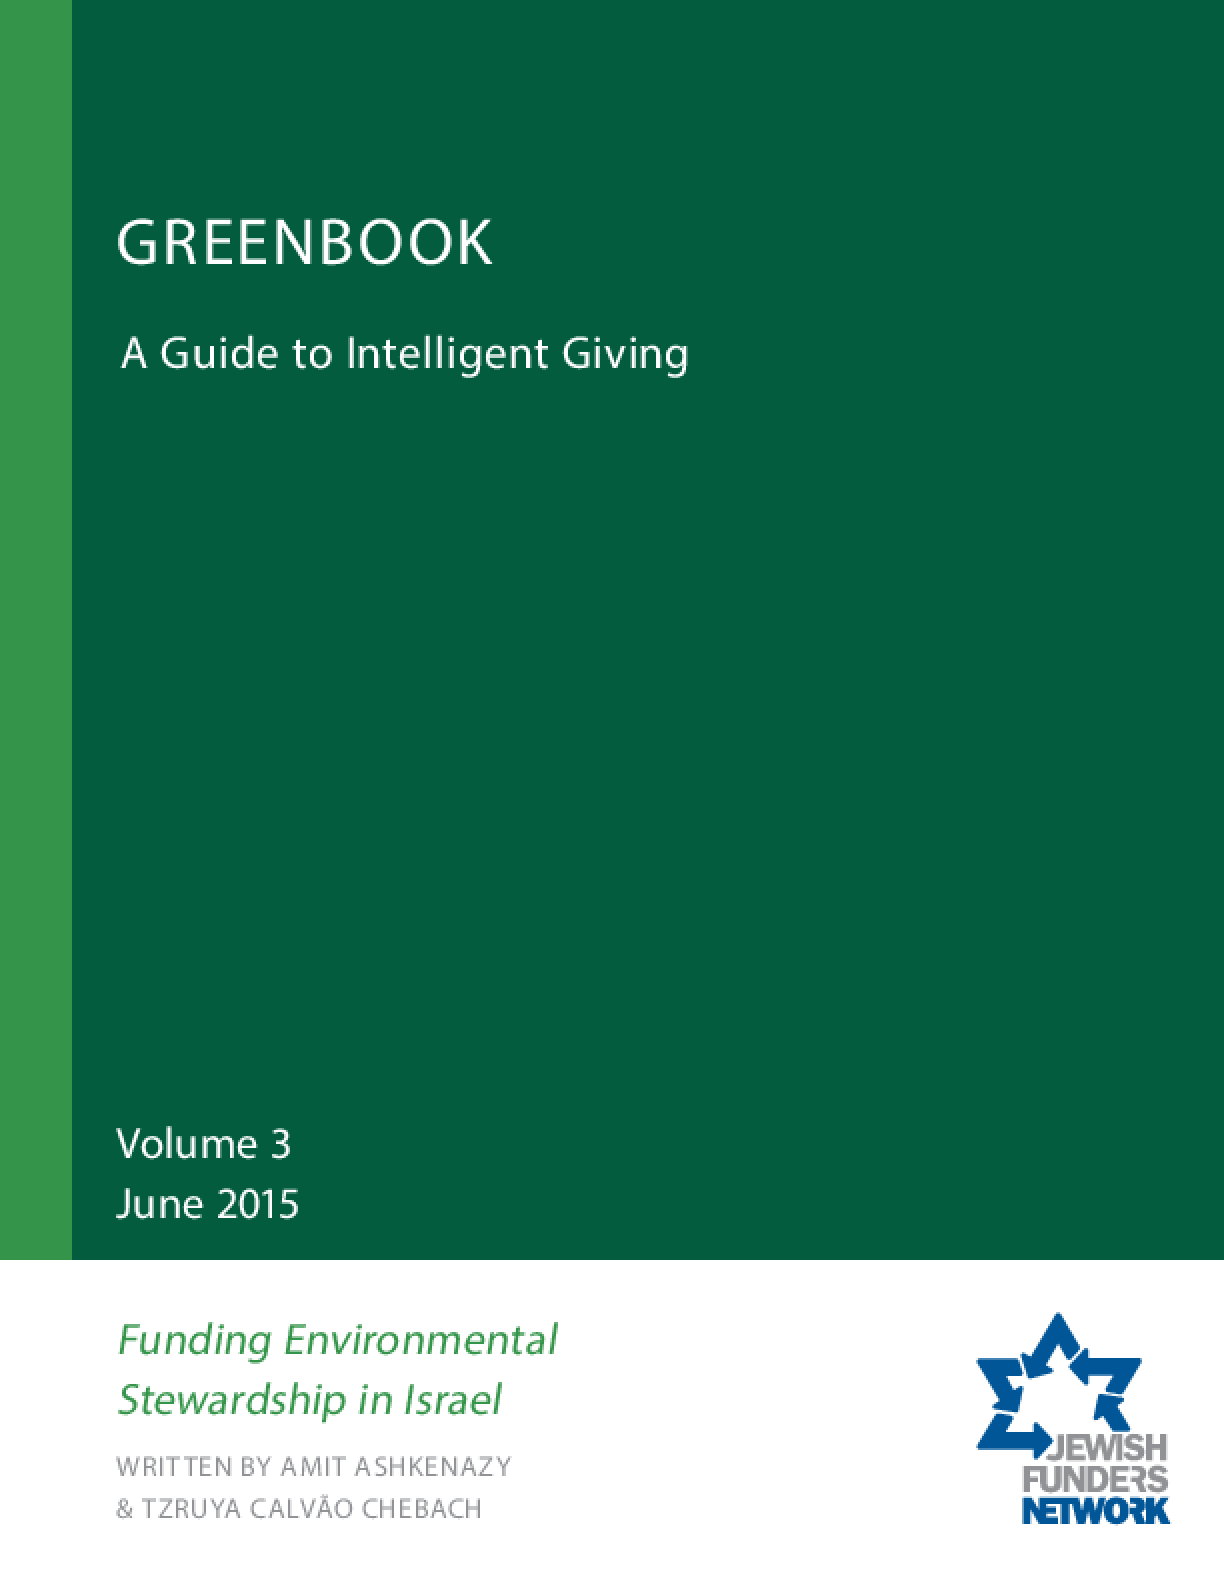 Greenbook: A Guide to Intelligent Giving Volume 3: Funding Environmental Stewardship in Israel